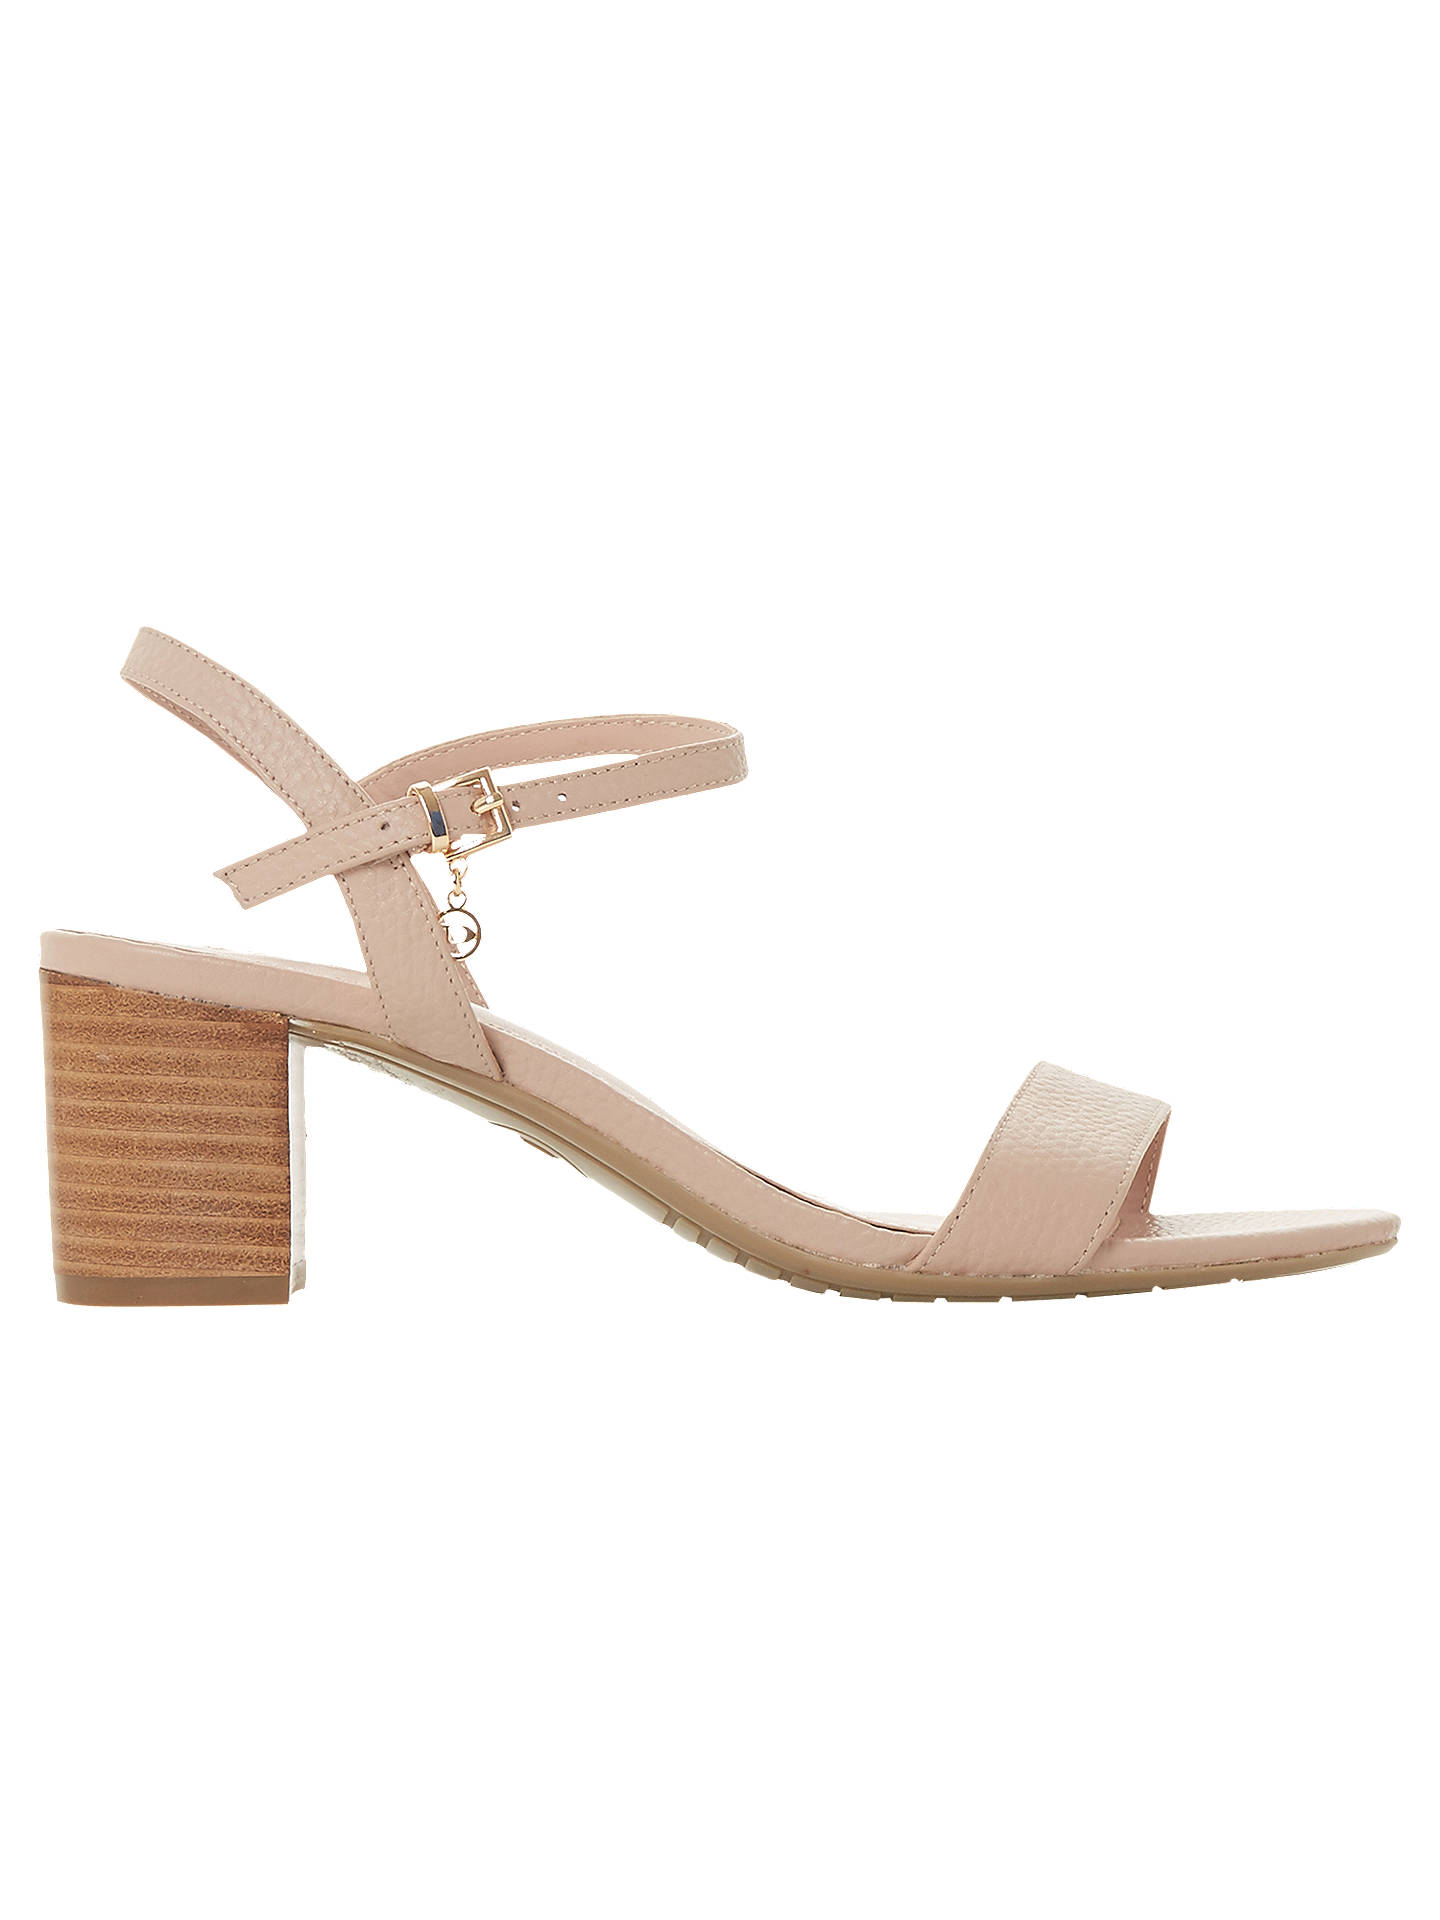 907aff80ebdd Dune Jiggle Block Heel Sandals at John Lewis   Partners